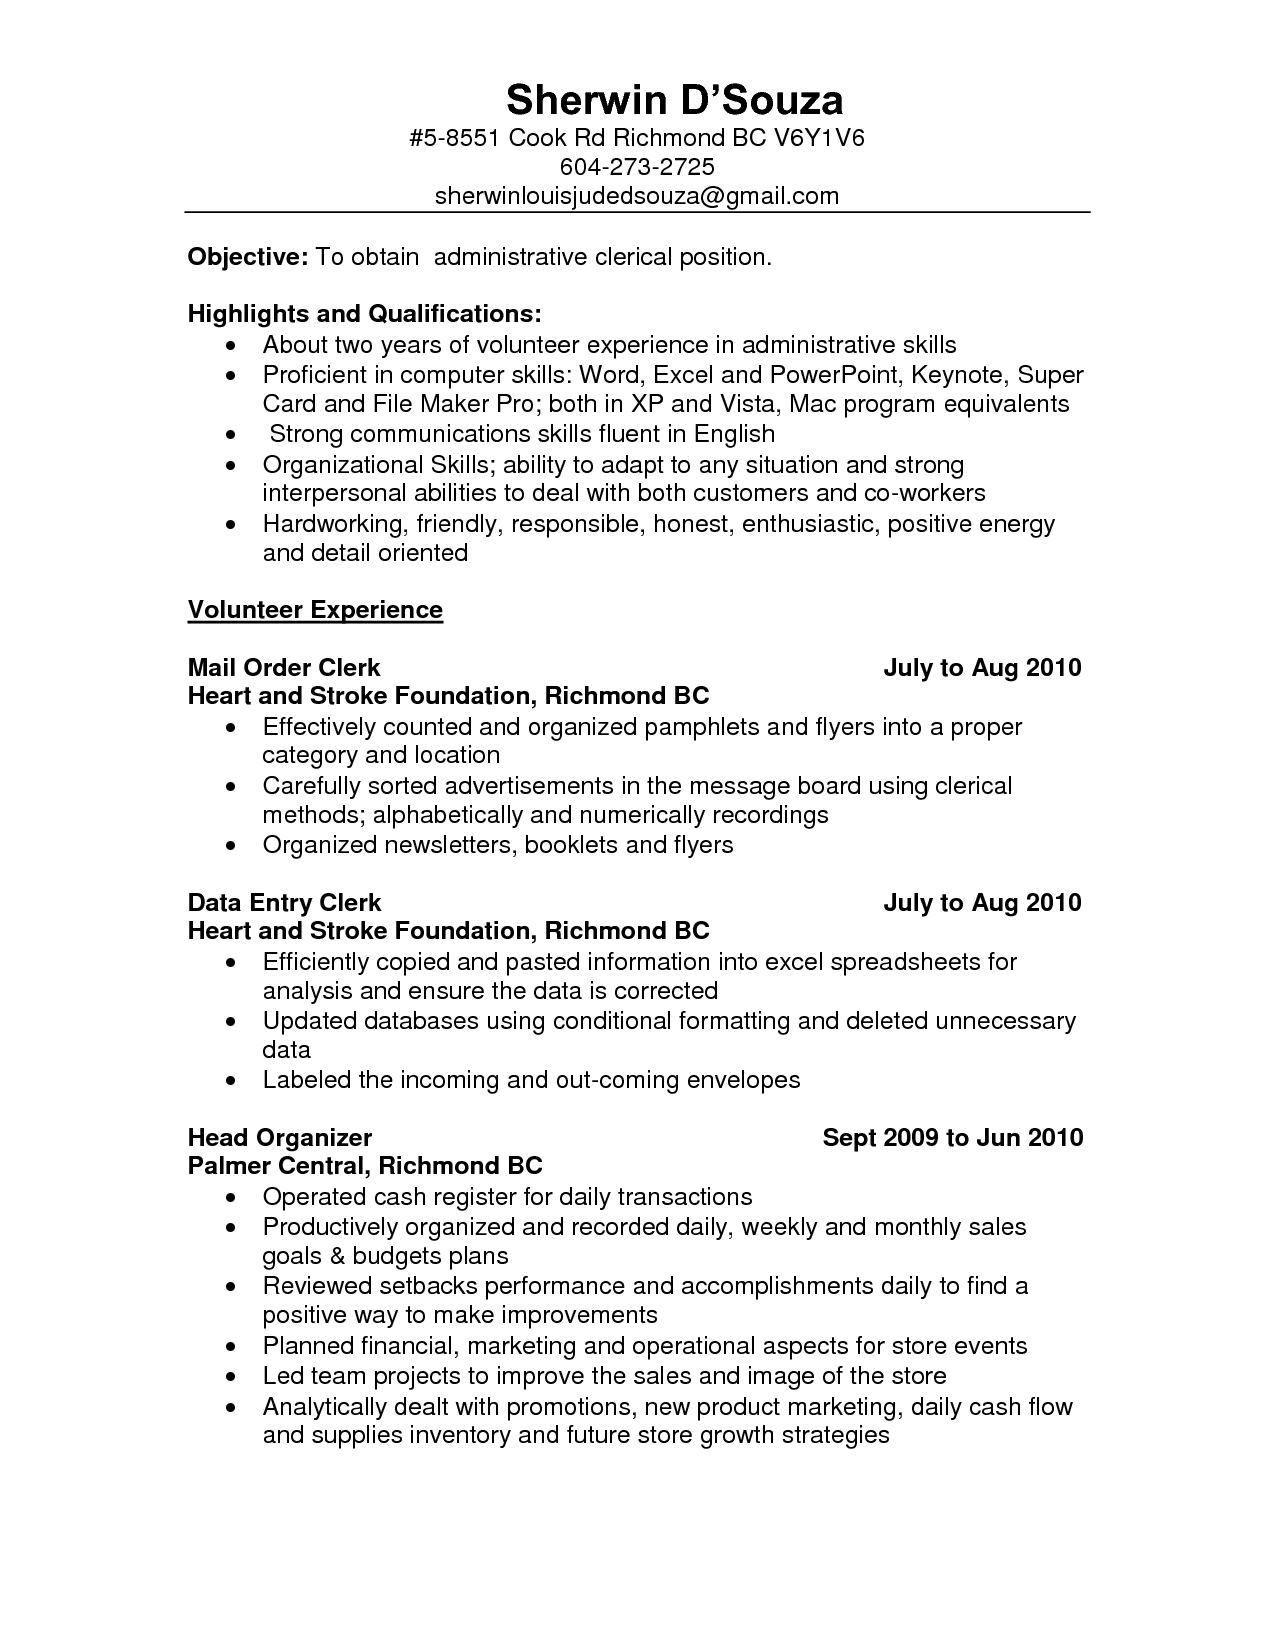 Sample Clerical Cover Letter Gallery - Cover Letter Ideas